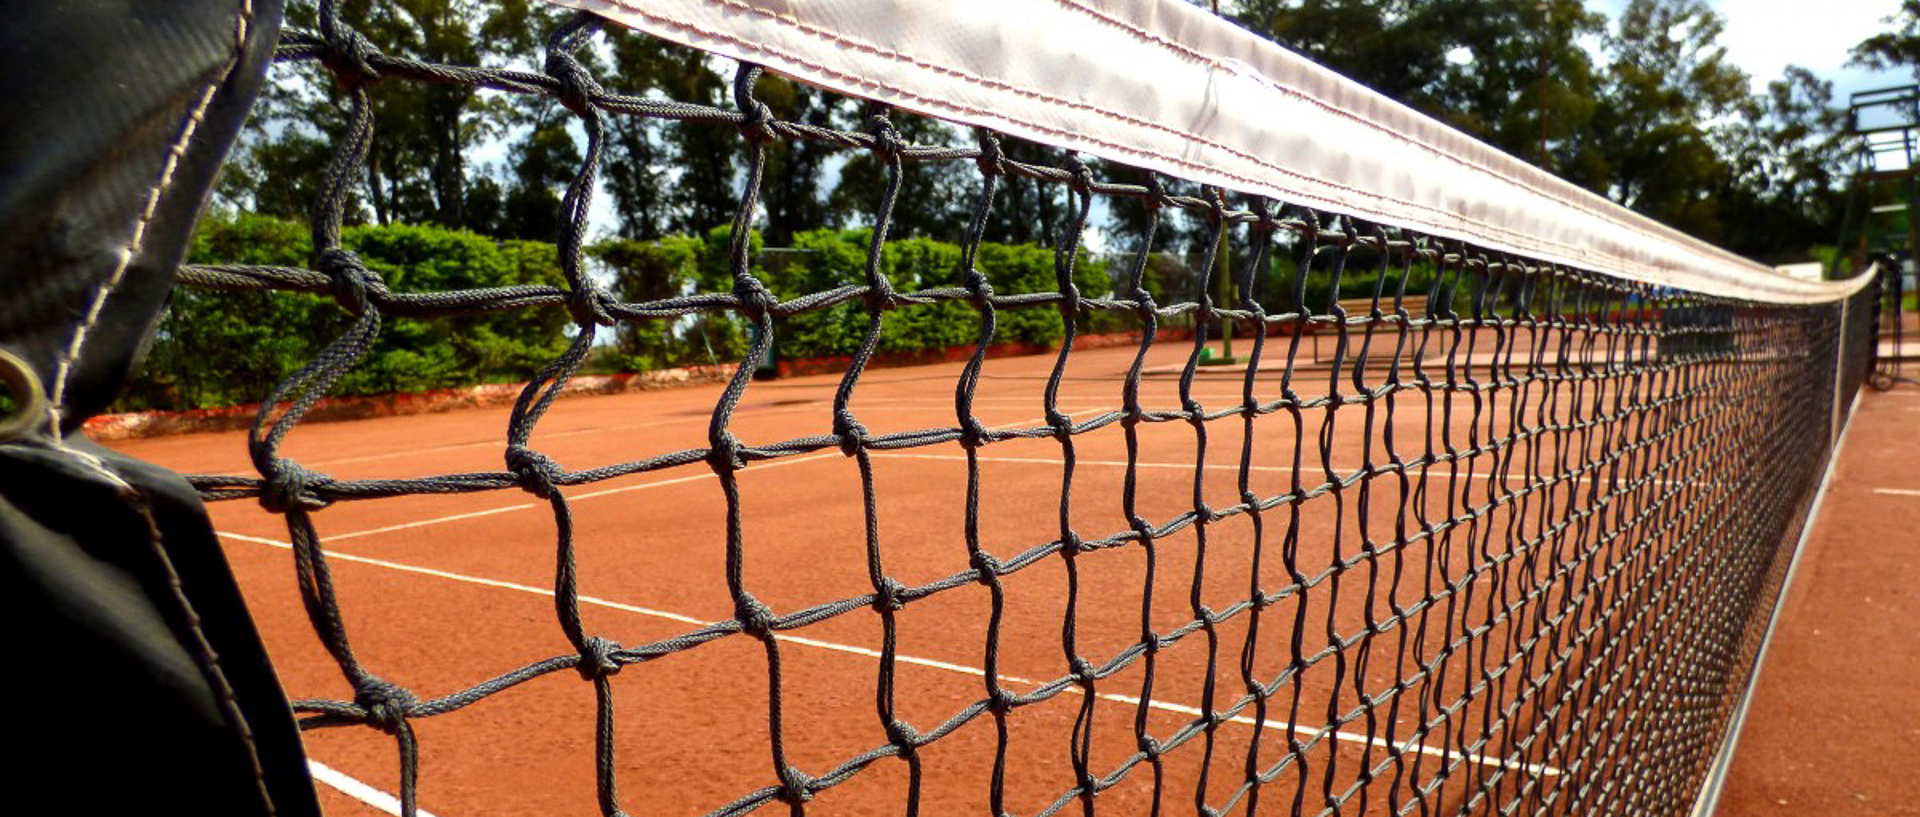 network_tennis_clay_strapping-798752